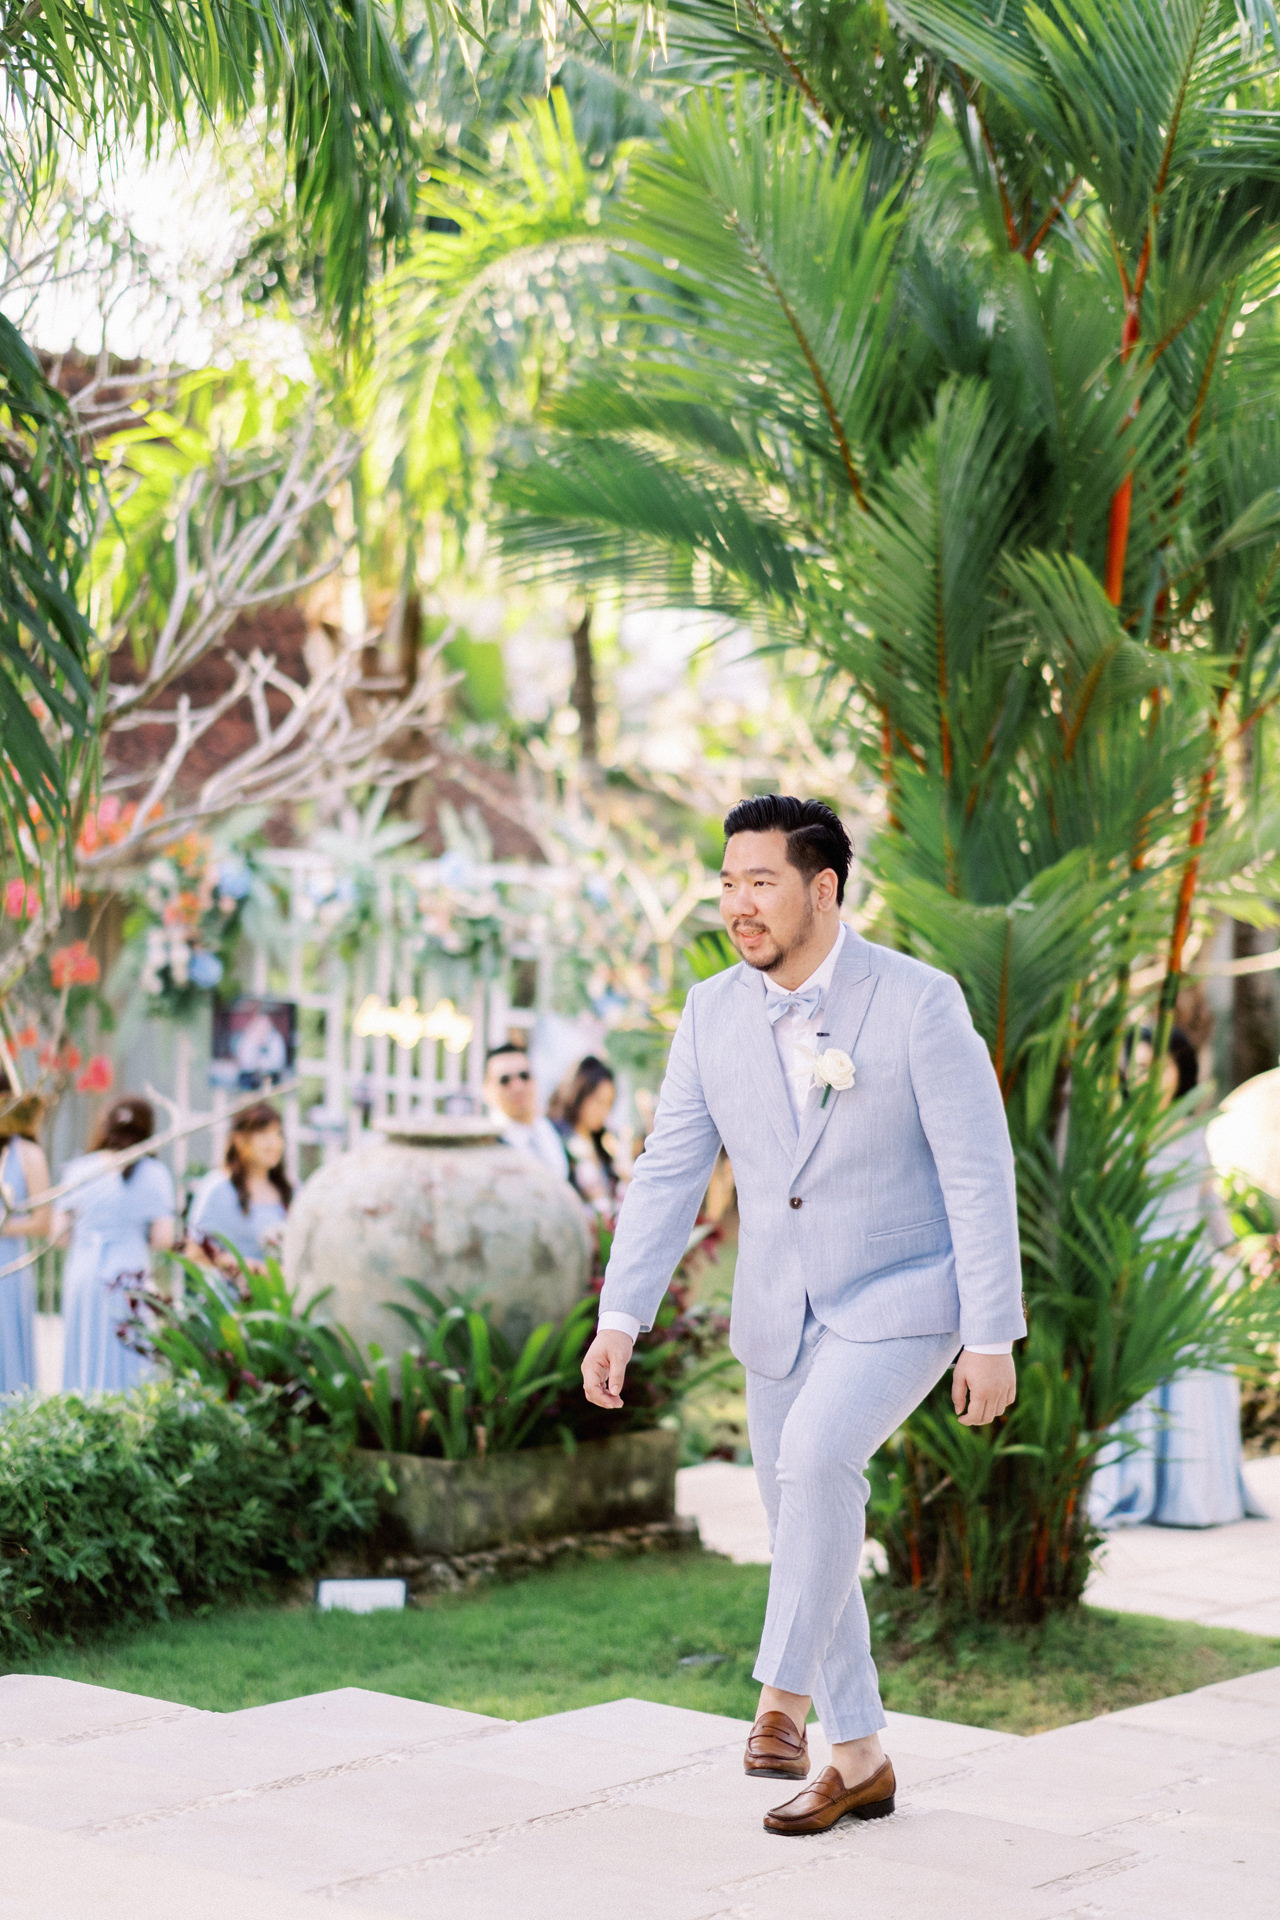 M&S: Shades of Blue Villa Plenilunio Bali Wedding 57